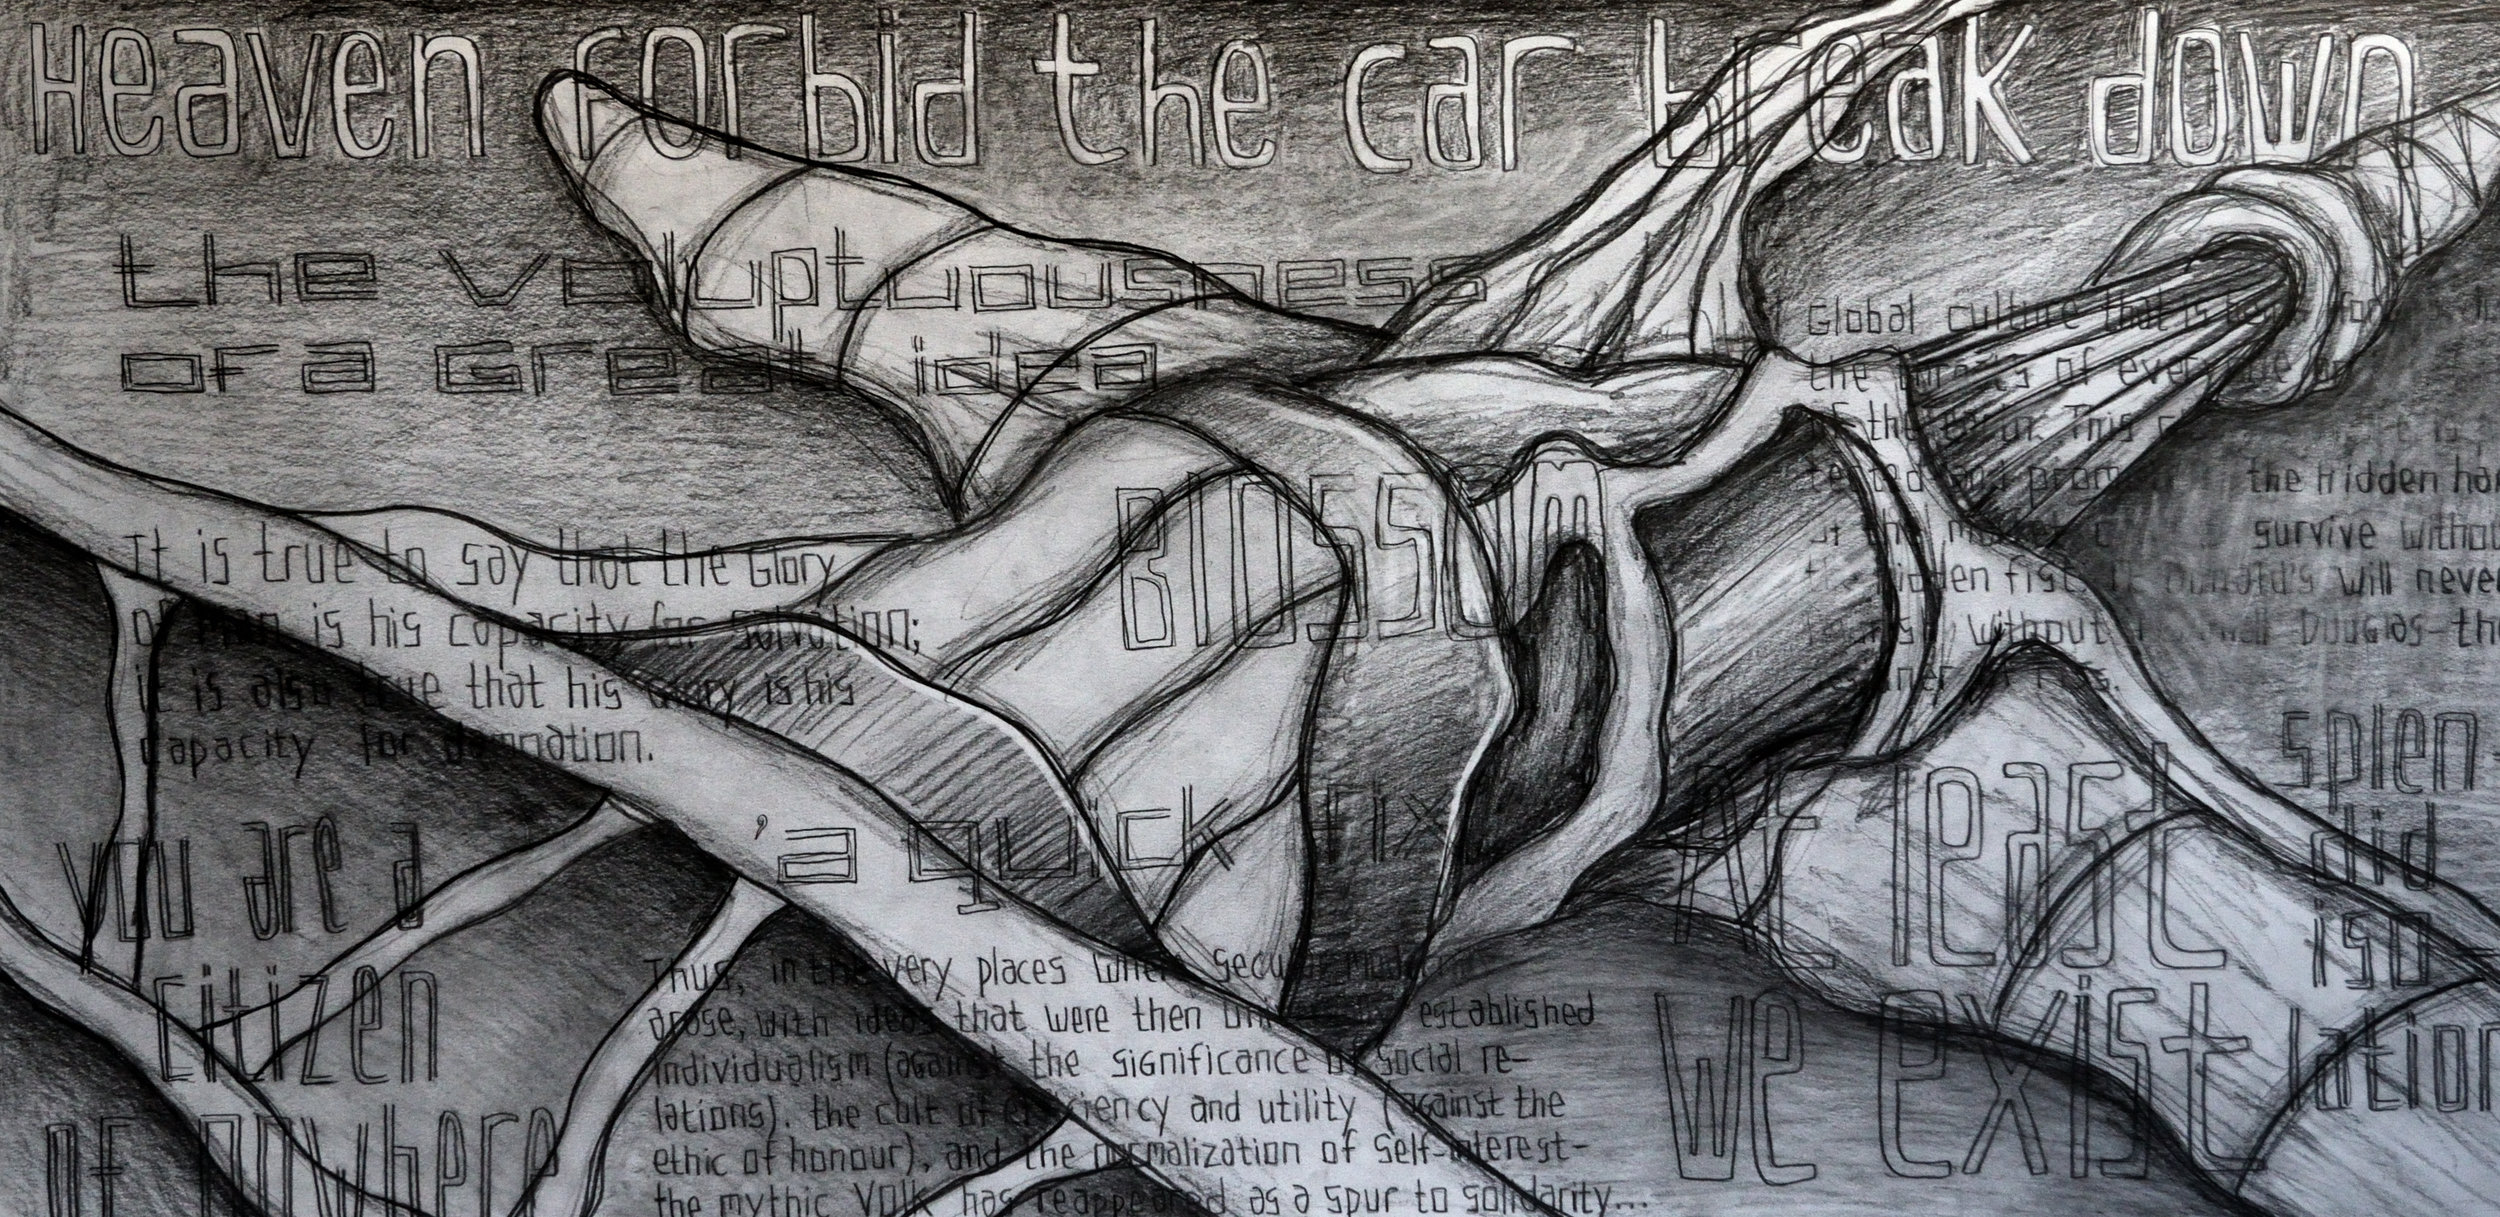 The Hidden Hand of The Citizen, pencil on paper, 70x140cm